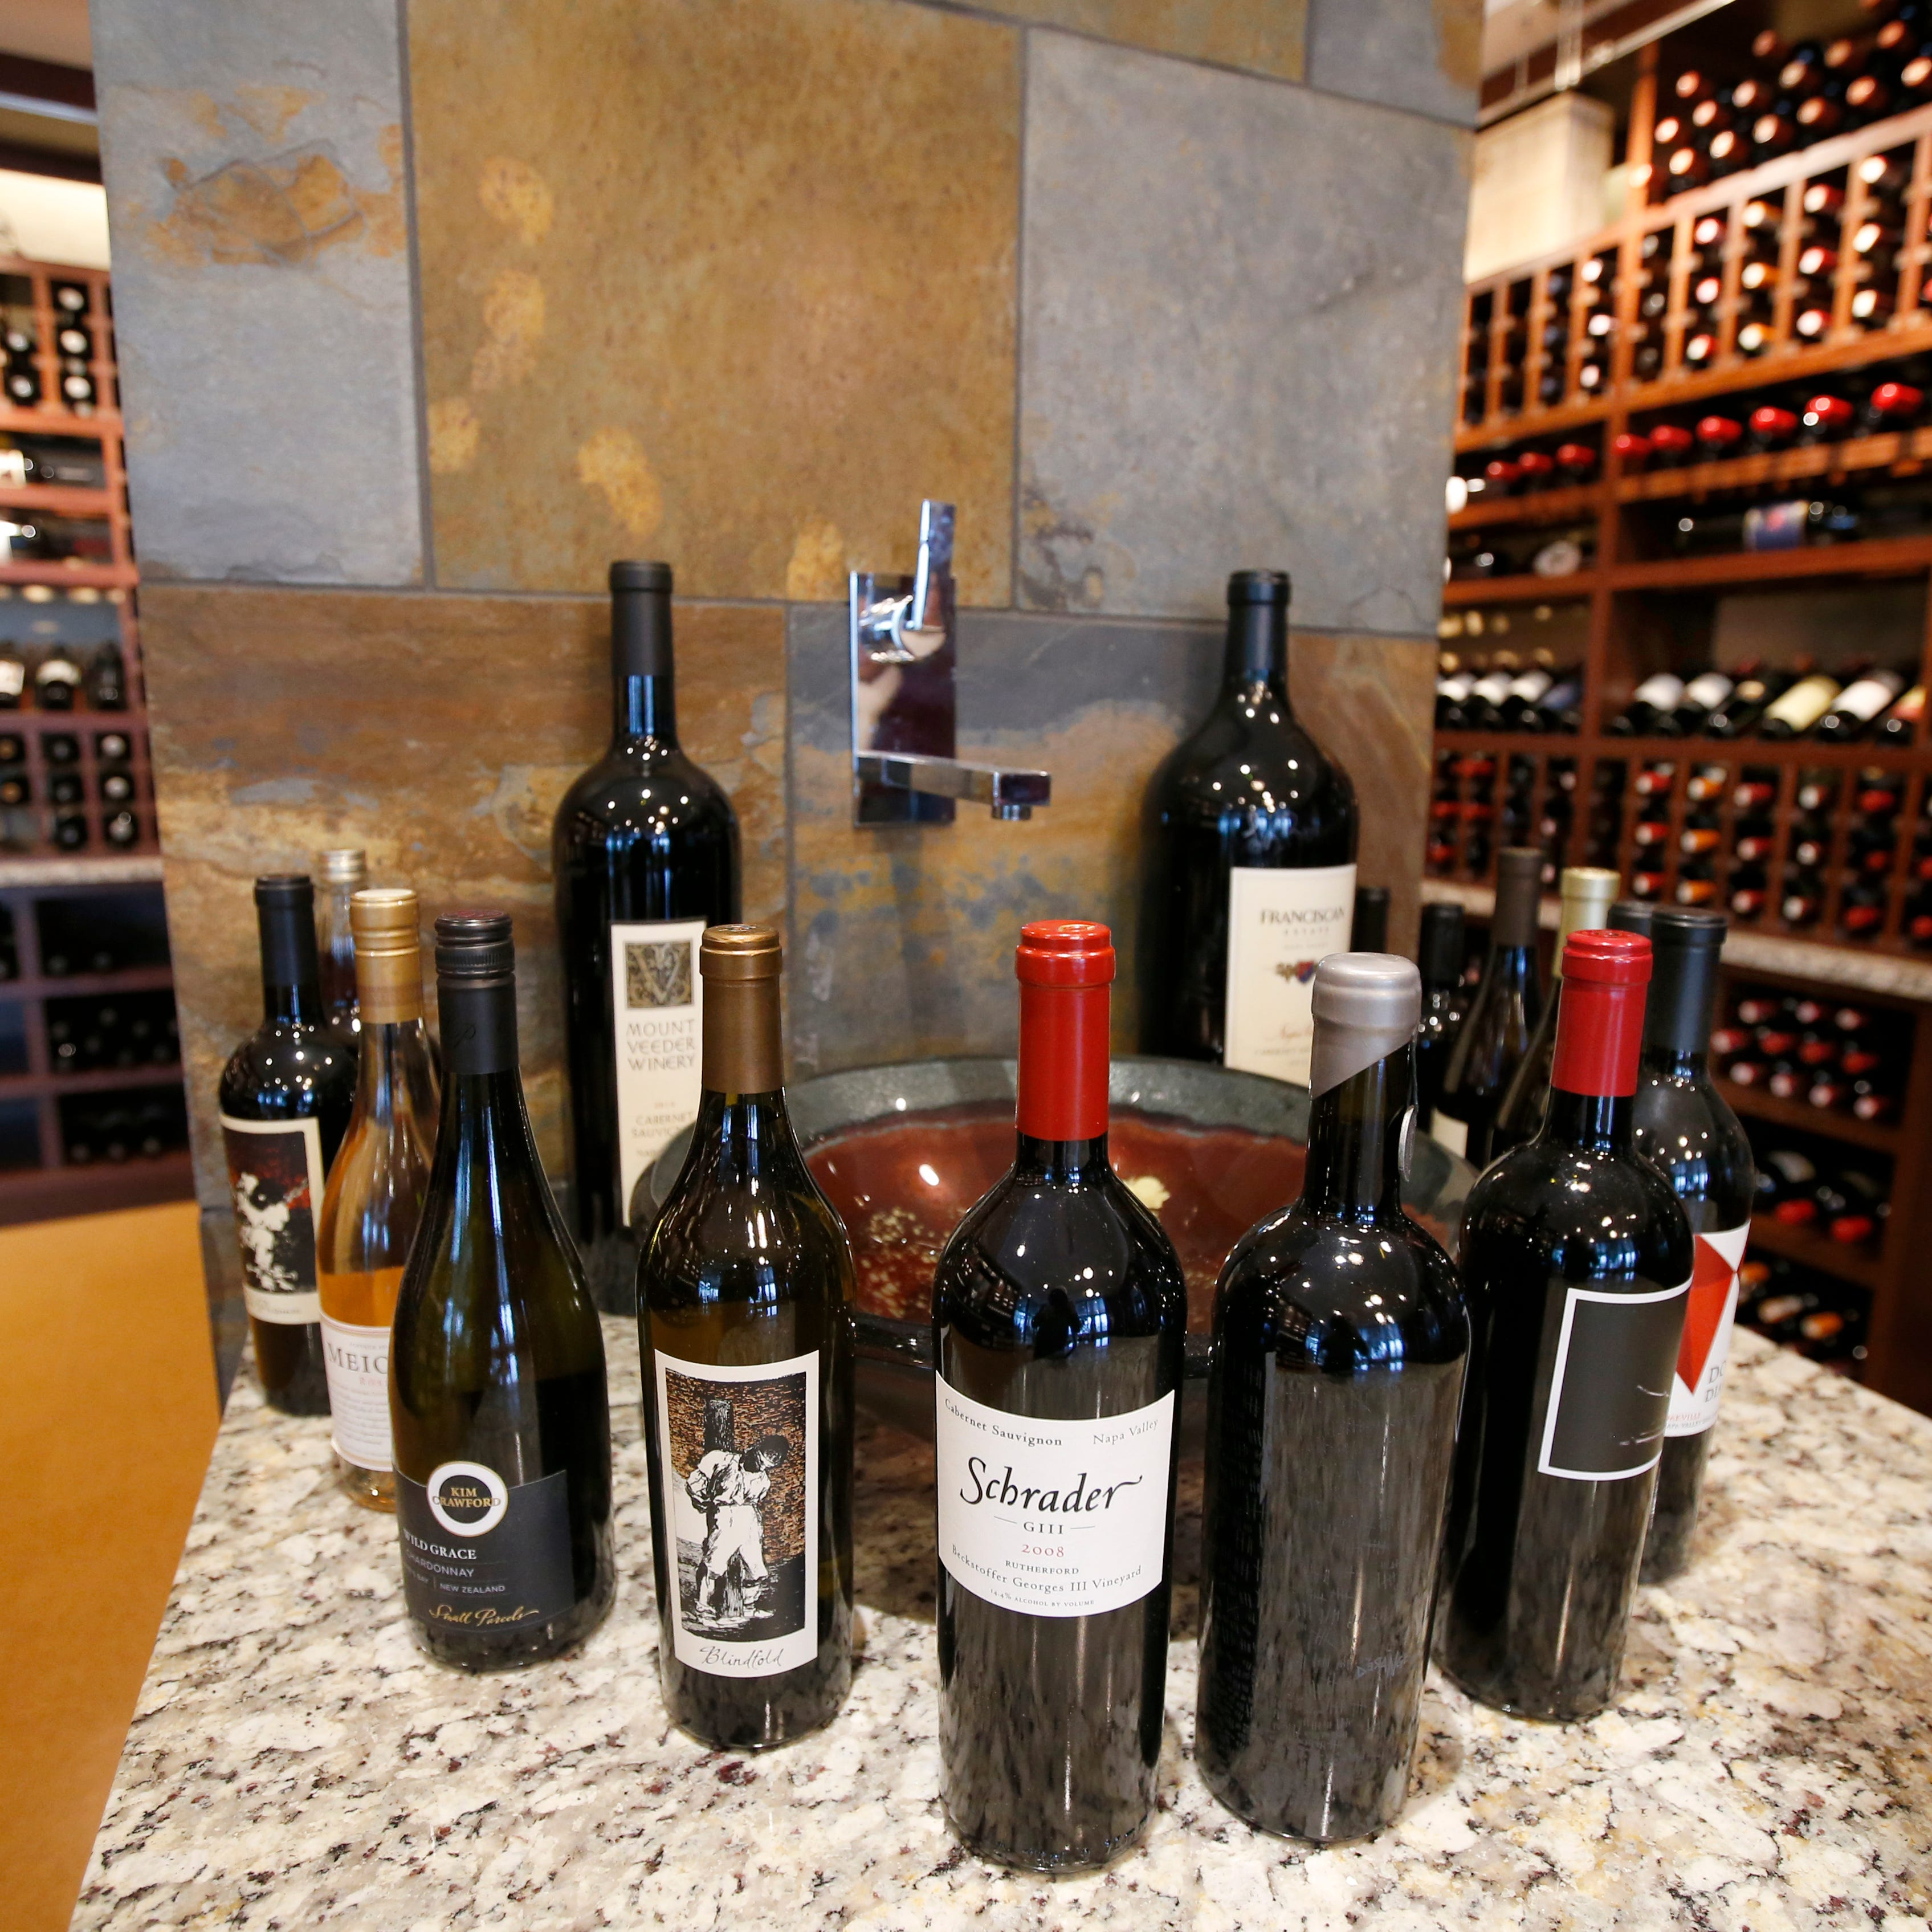 Here are the wines, spirits Gallo bought from Constellation